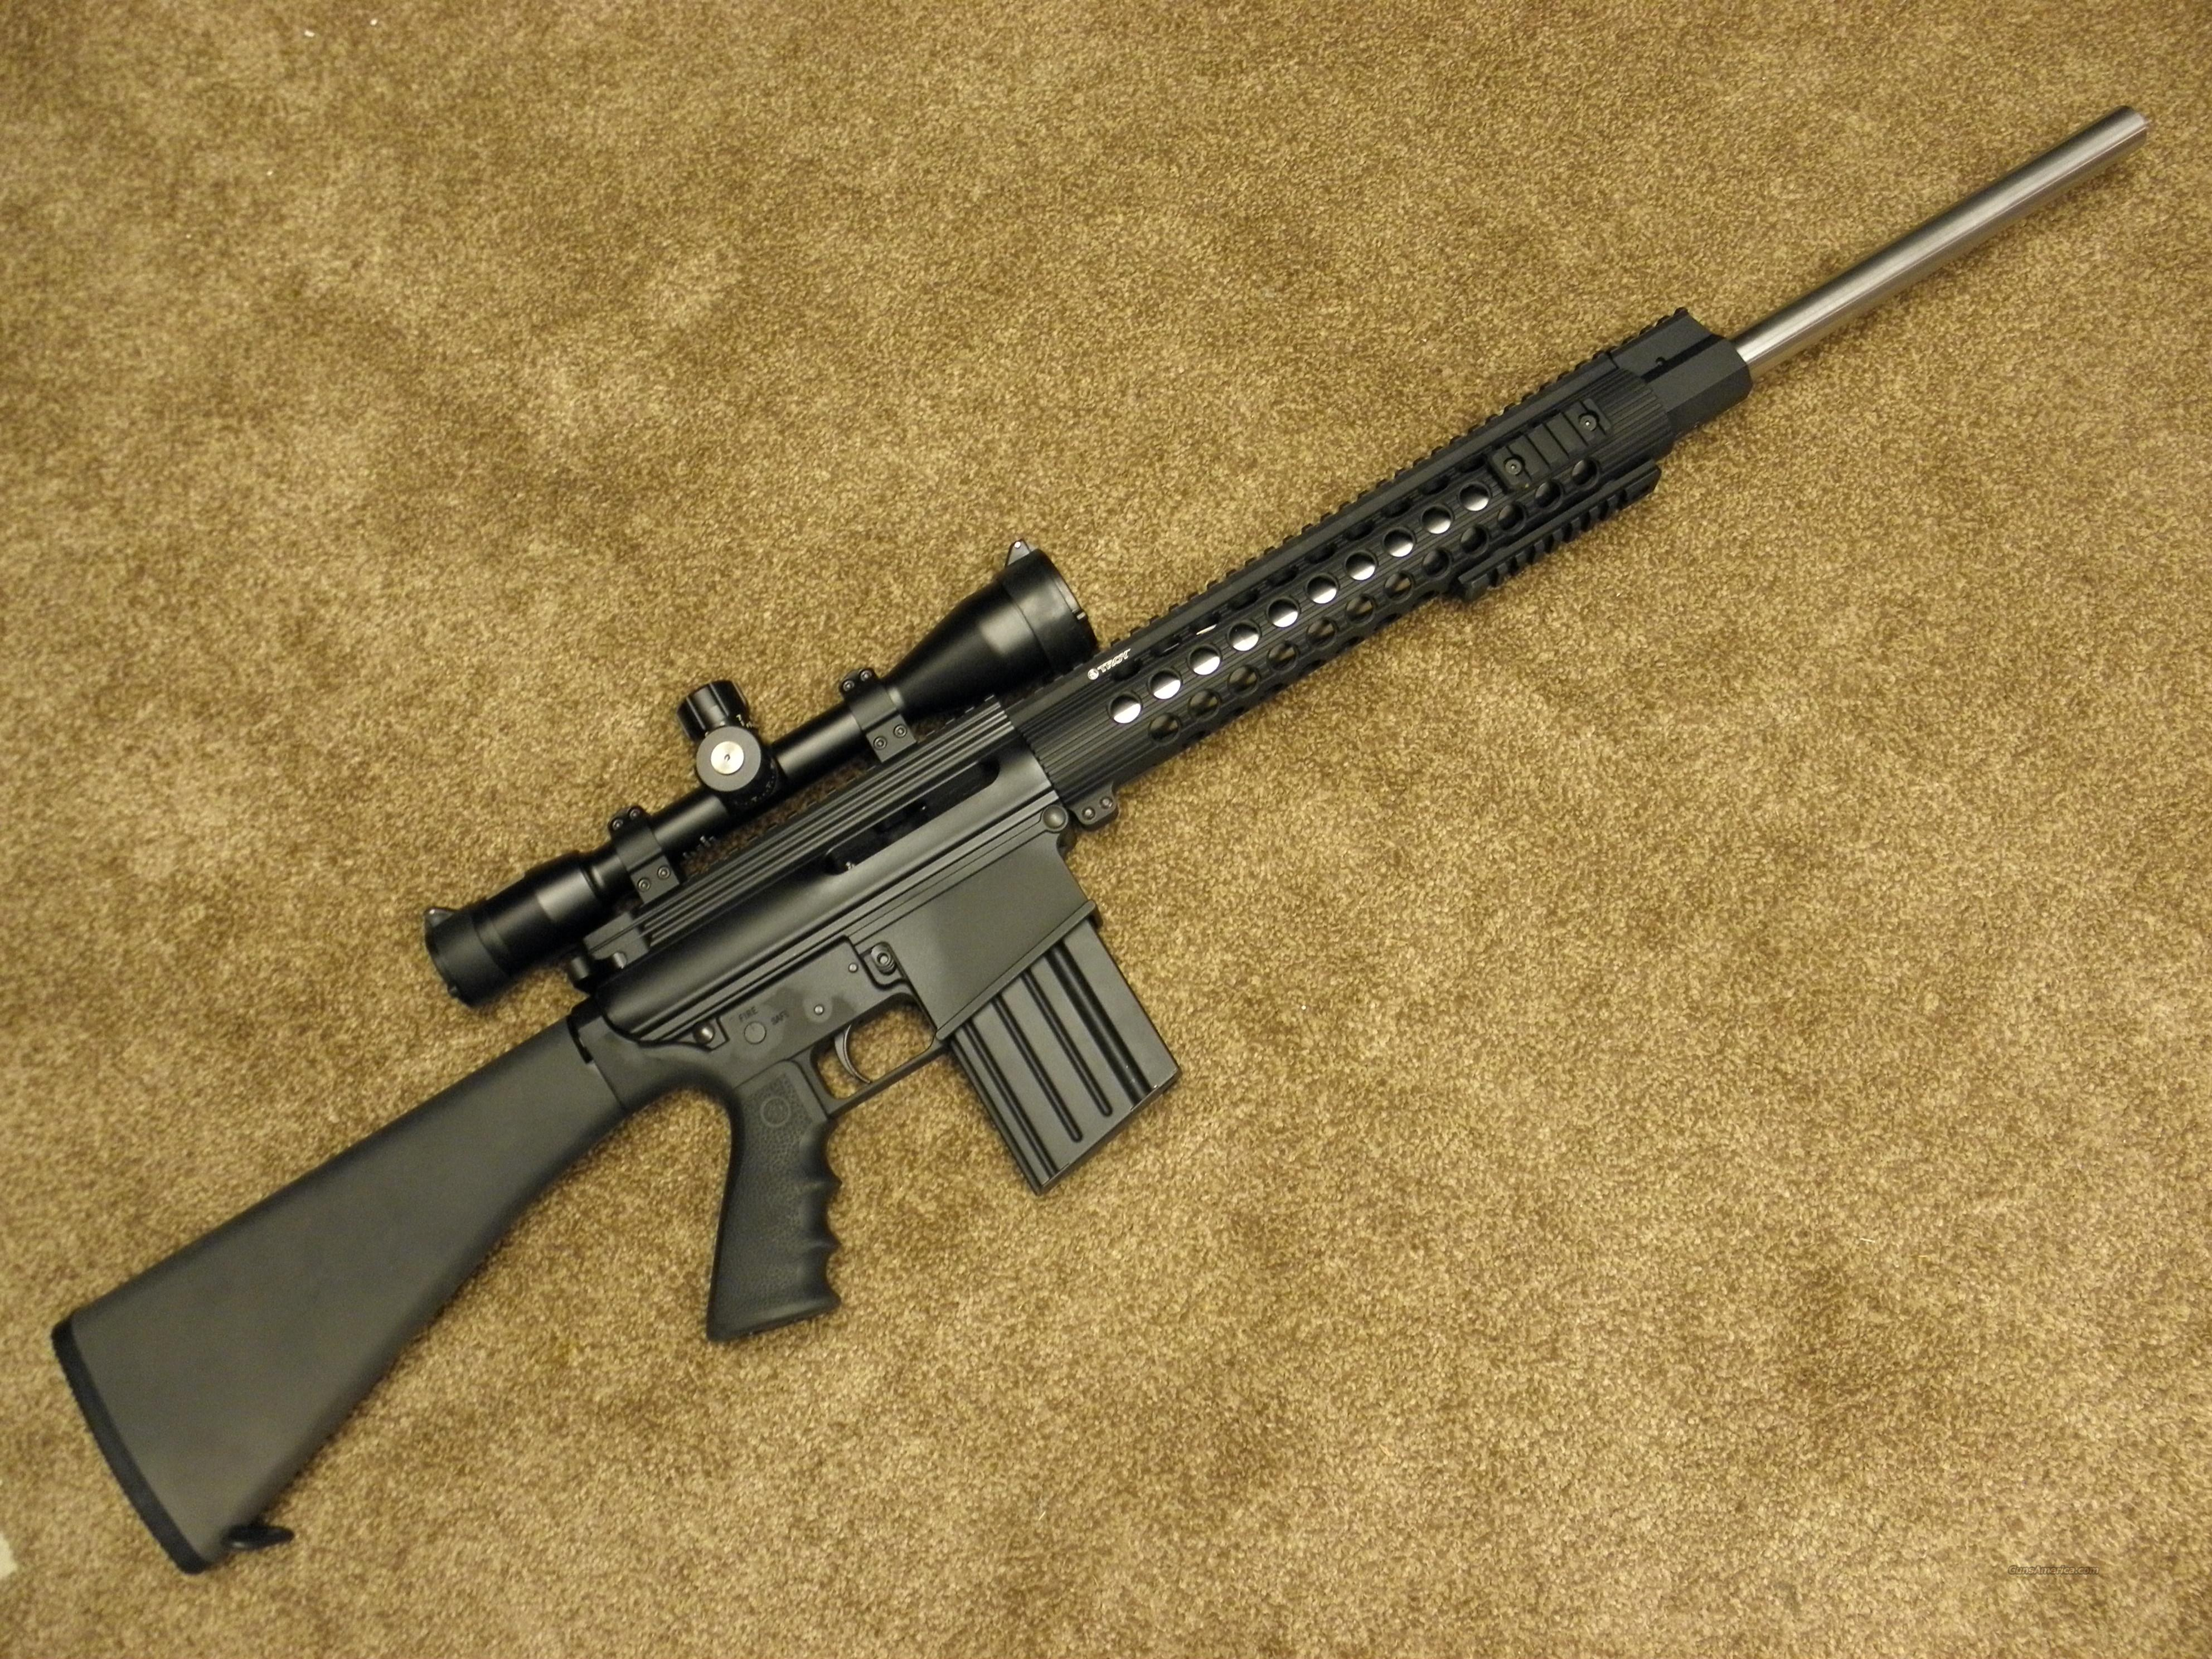 DPMS LR-308 PANTHER RIFLE W/TROY RAIL for sale